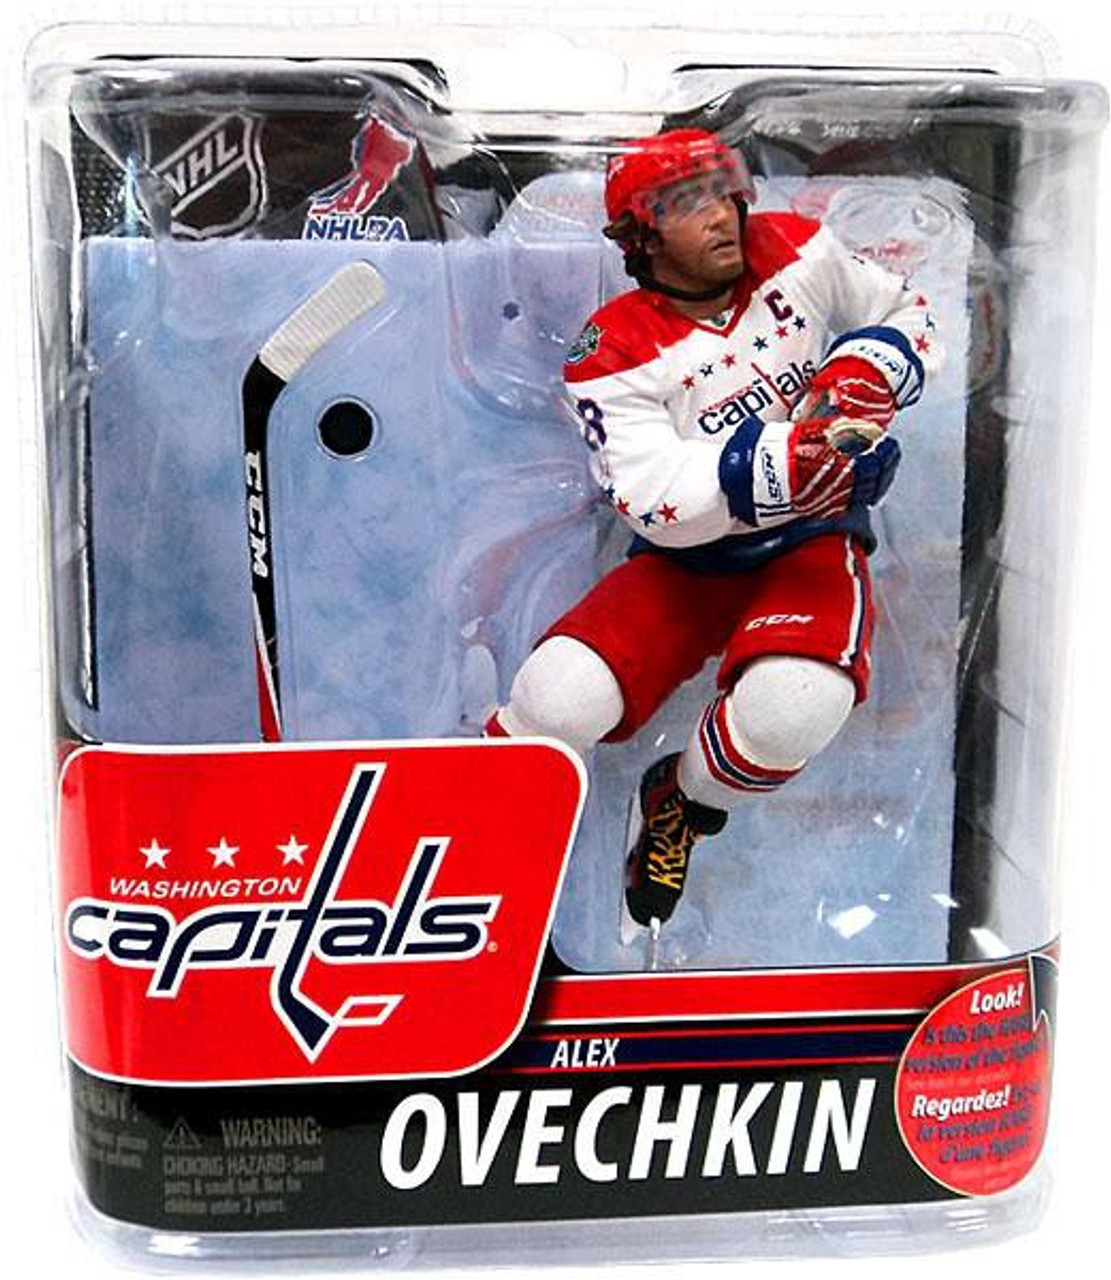 071aed120 McFarlane Toys NHL Washington Capitals Sports Picks Series 29 Alexander  Ovechkin Action Figure Damaged Package - ToyWiz